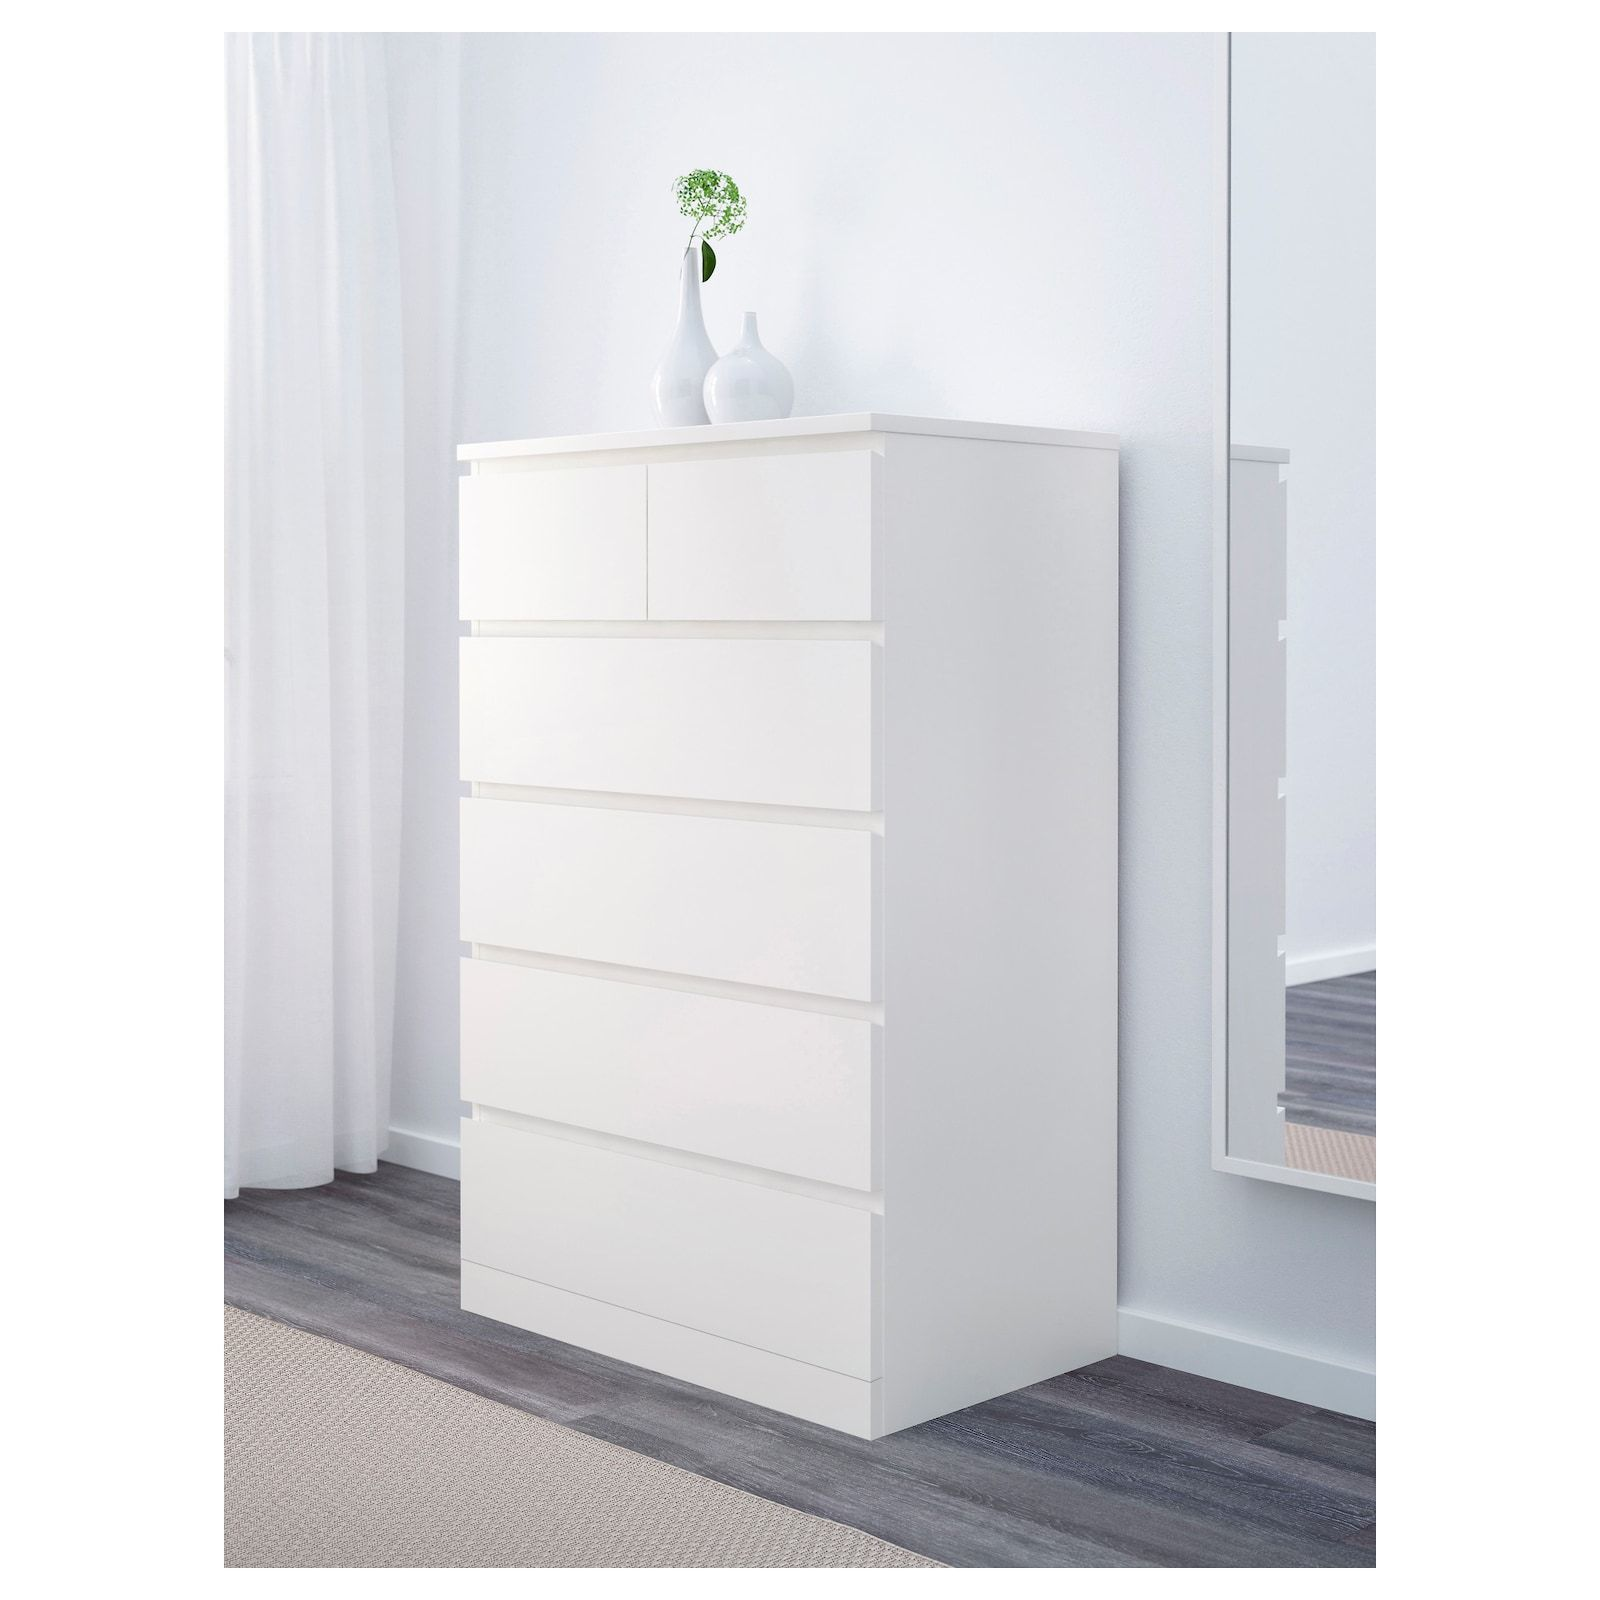 Malm 6 Drawer Chest White 31 1 2x48 3 8 Ikea In 2021 6 Drawer Chest Malm Chest Of Drawers [ 1600 x 1600 Pixel ]